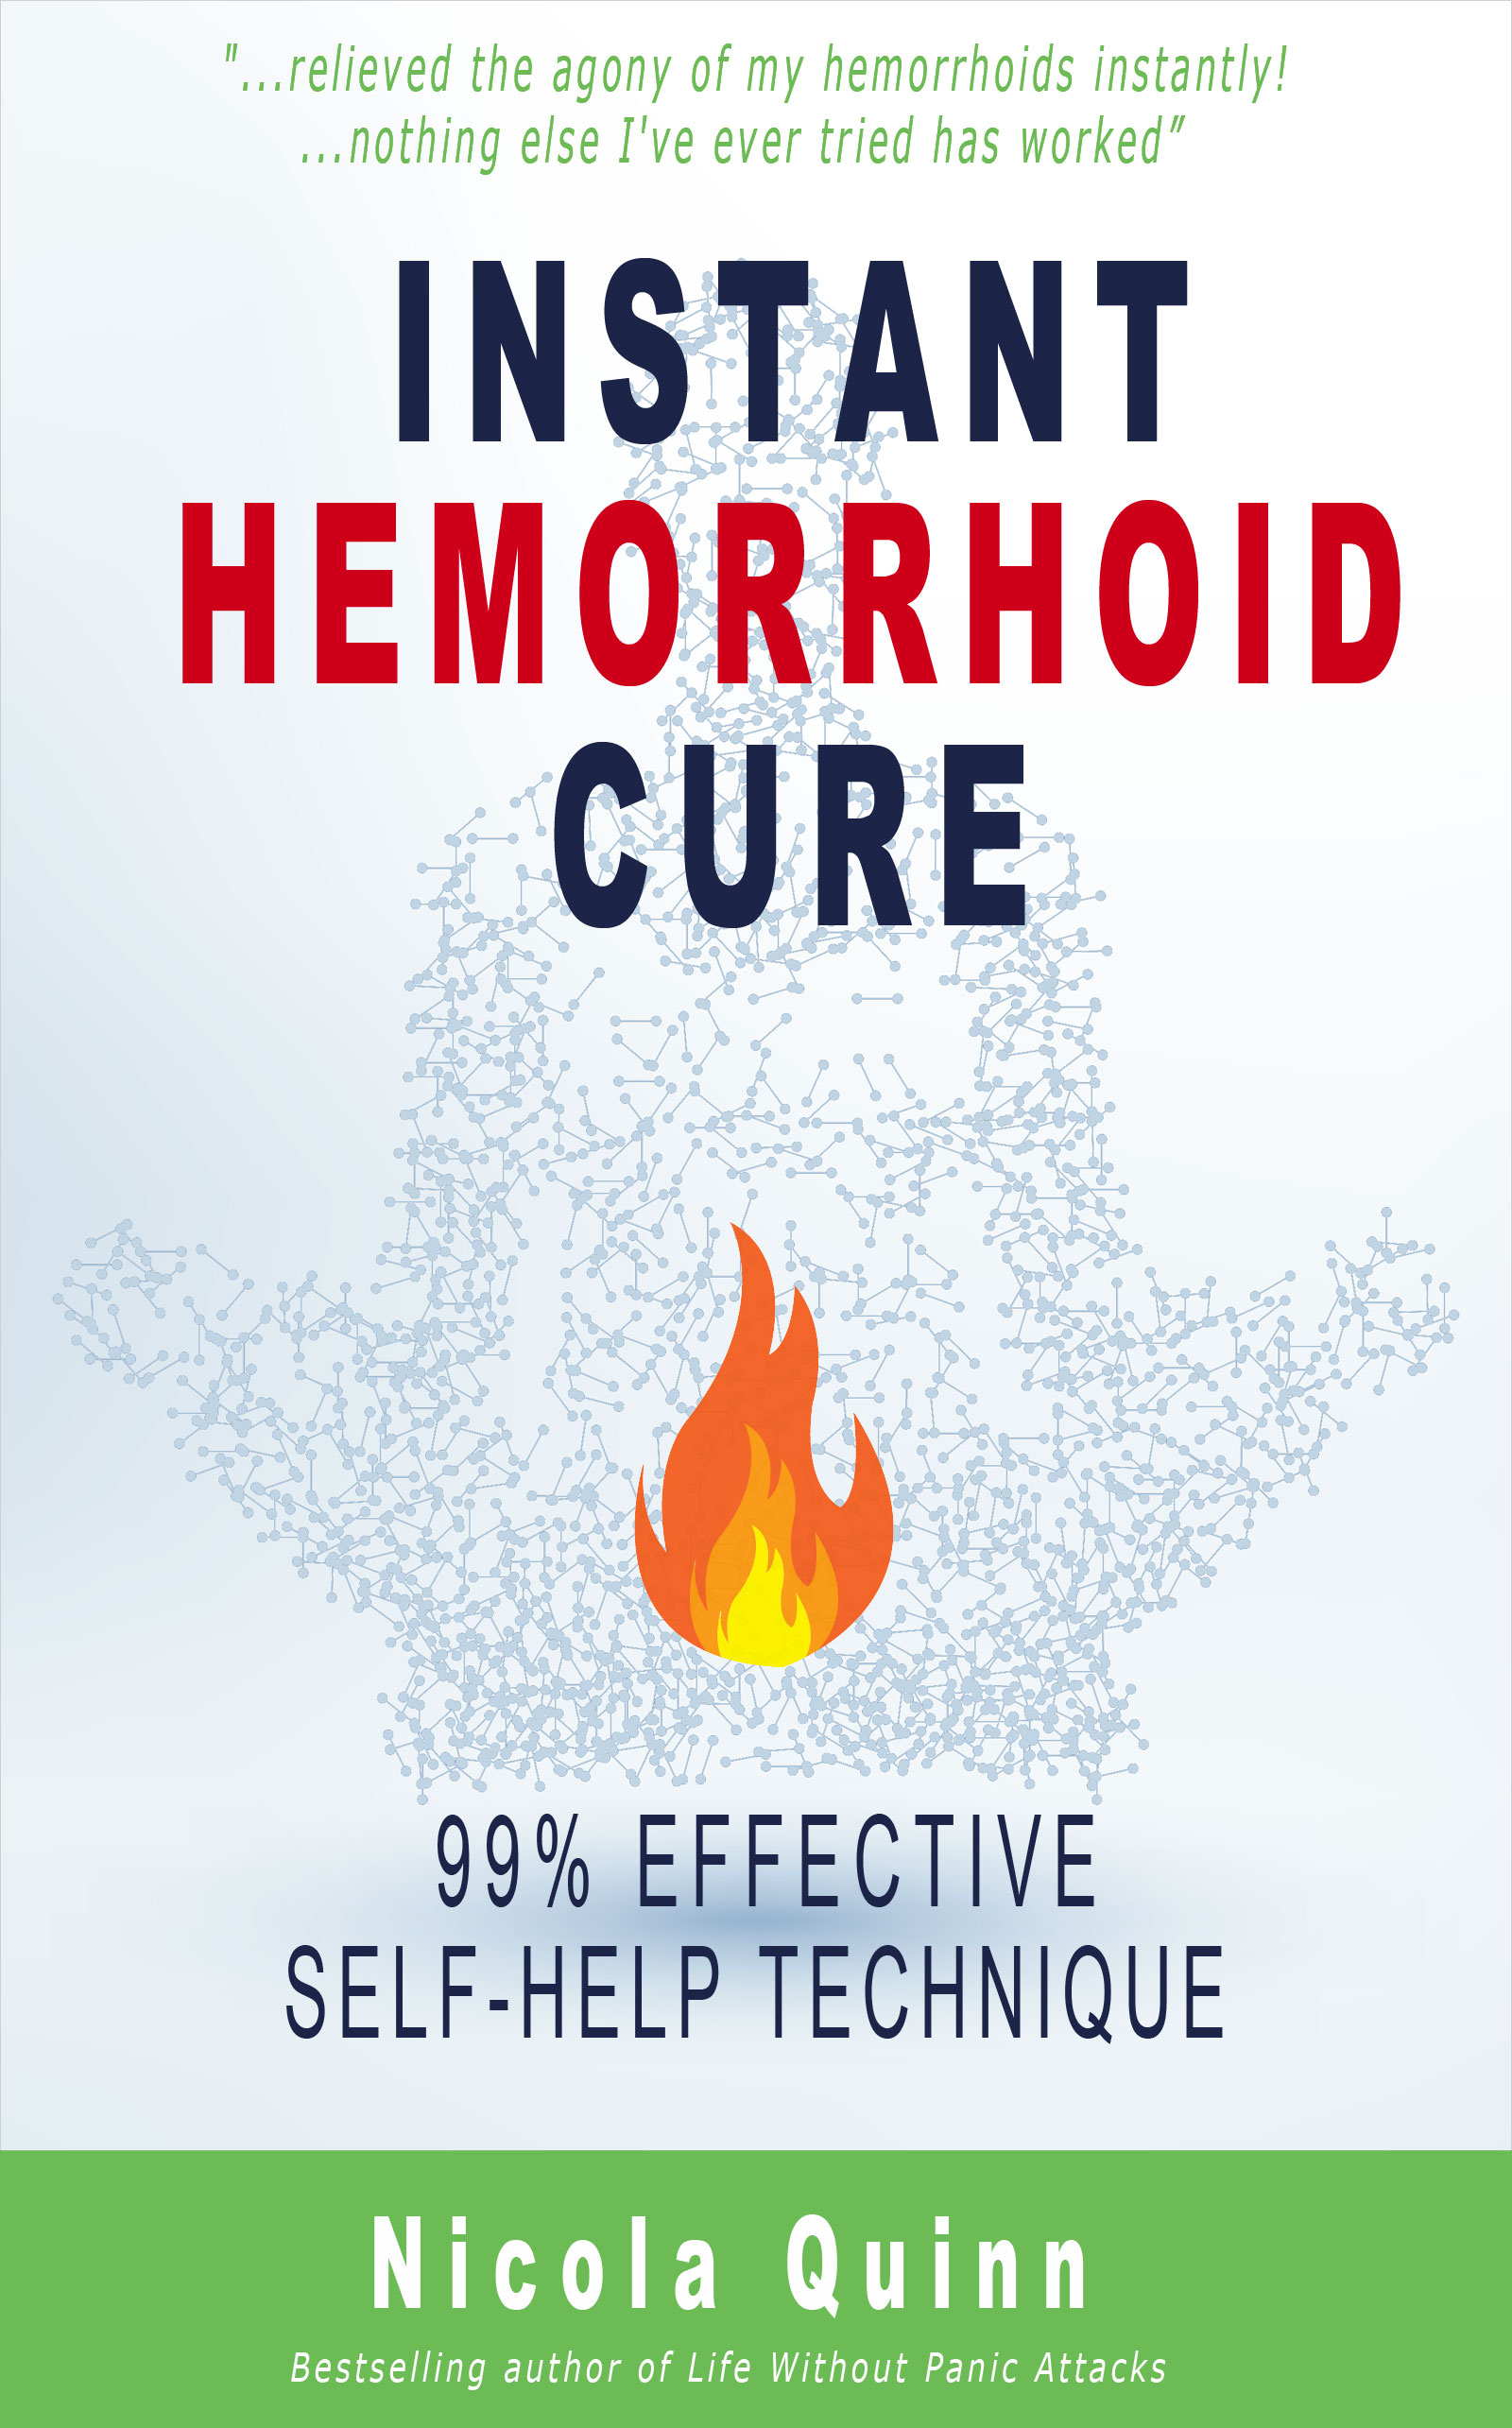 Instant Hemorrhoid Cure by Nicola Quinn